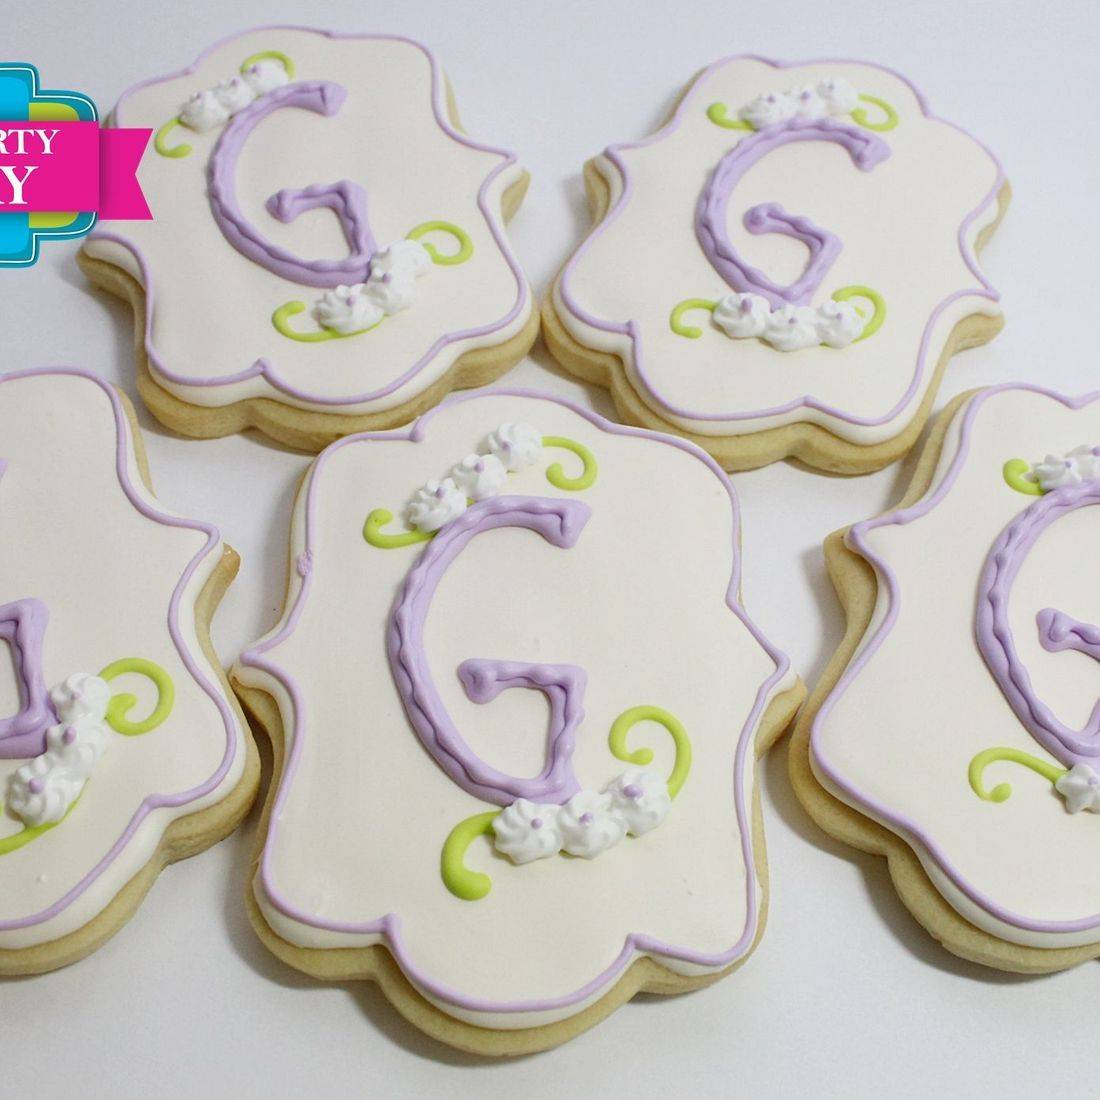 Monogram Letter Cookies Milwaukee